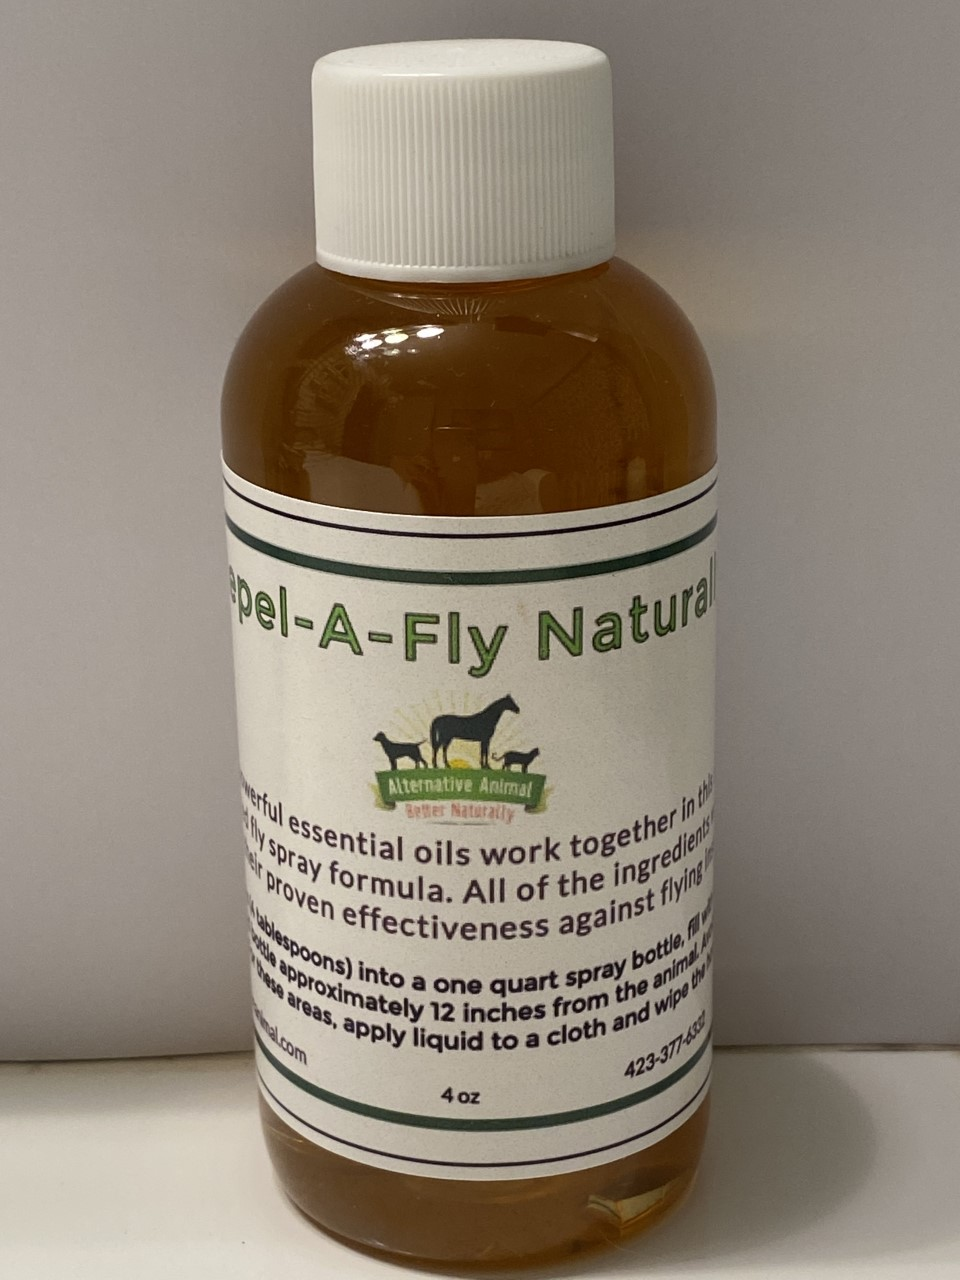 Repel-A-Fly-Natural Fly Spray for Horses (concentrate)